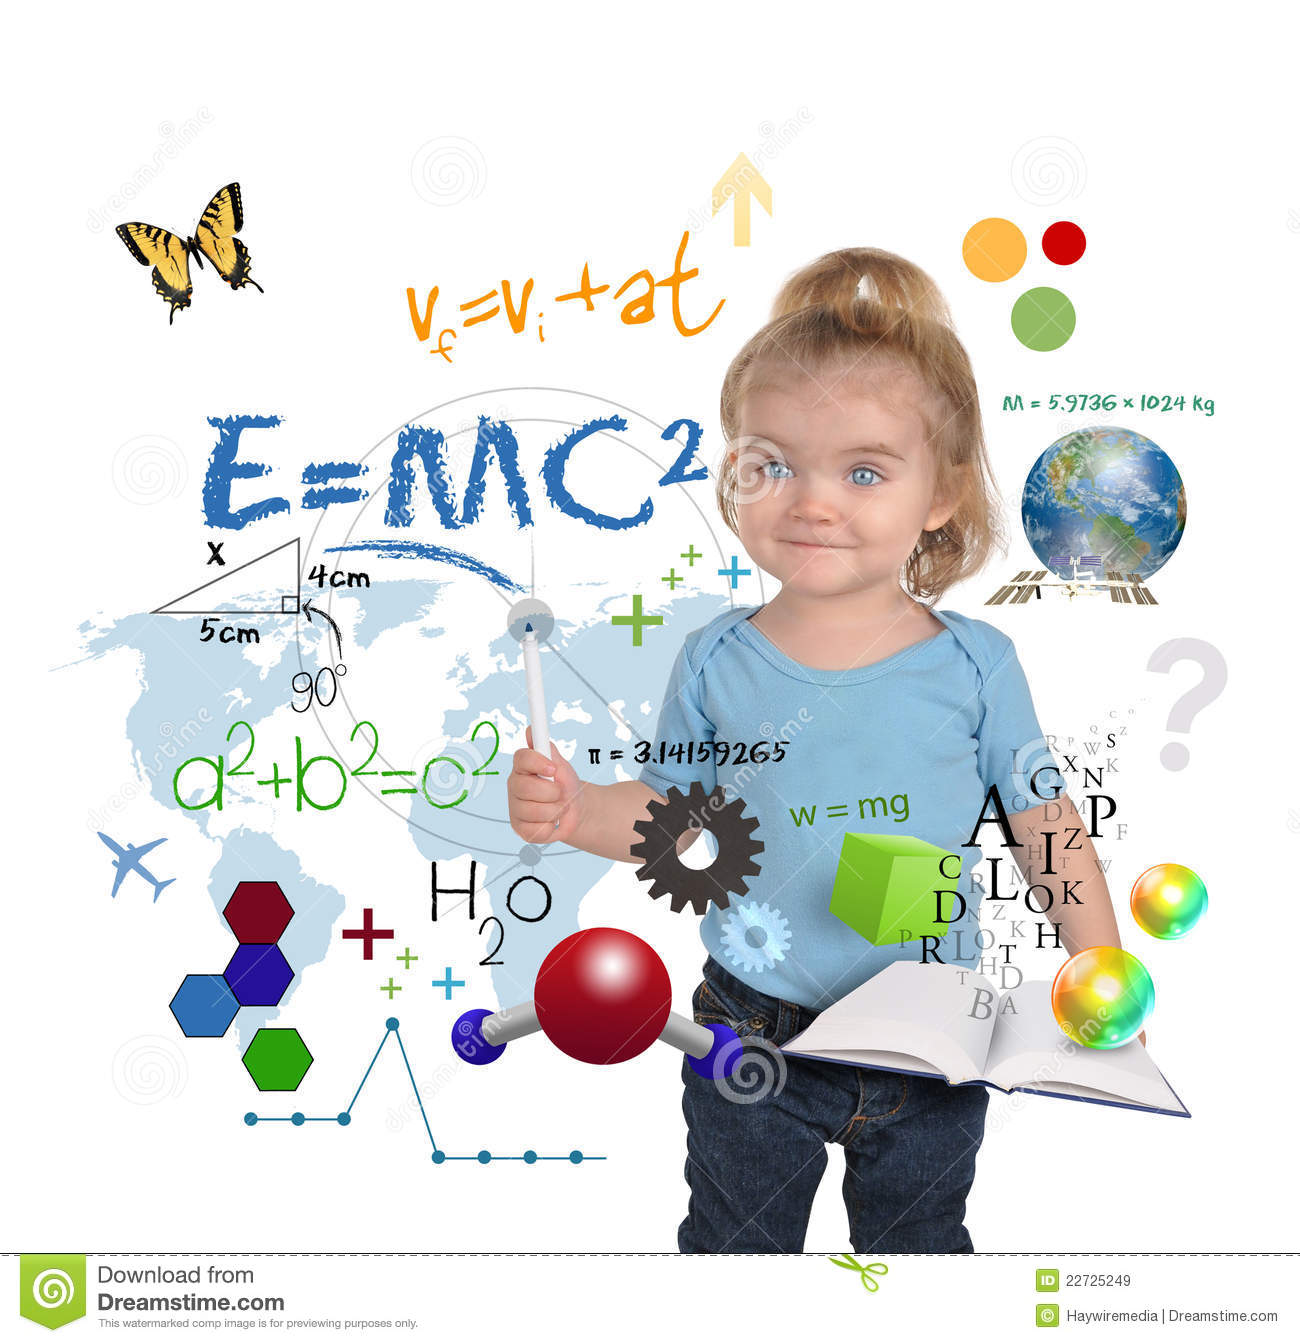 encouraging girls in math and science essay Issuu is a digital publishing platform that makes it simple to publish magazines, catalogs, newspapers, books, and more online easily share your publications and get.